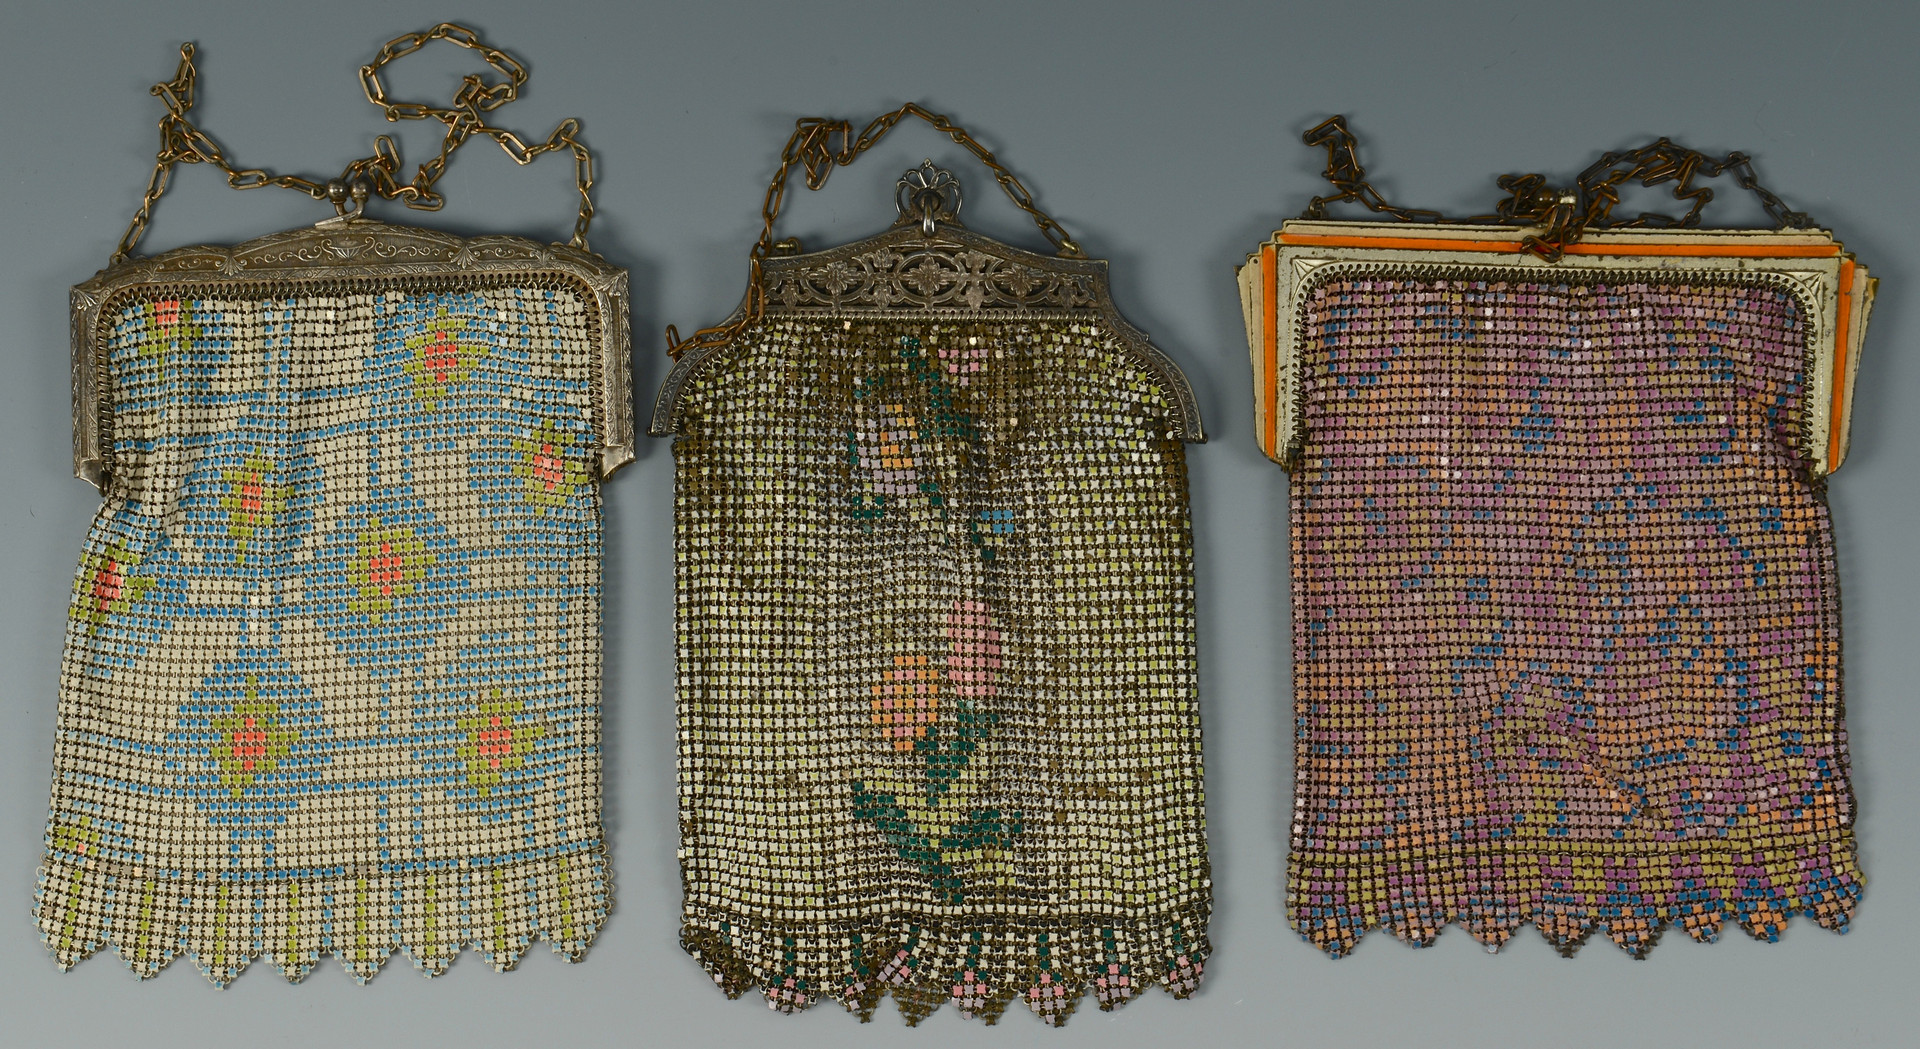 Lot 822: 6 Whiting & Davis Mesh Bags w/ Bangle Bracelet